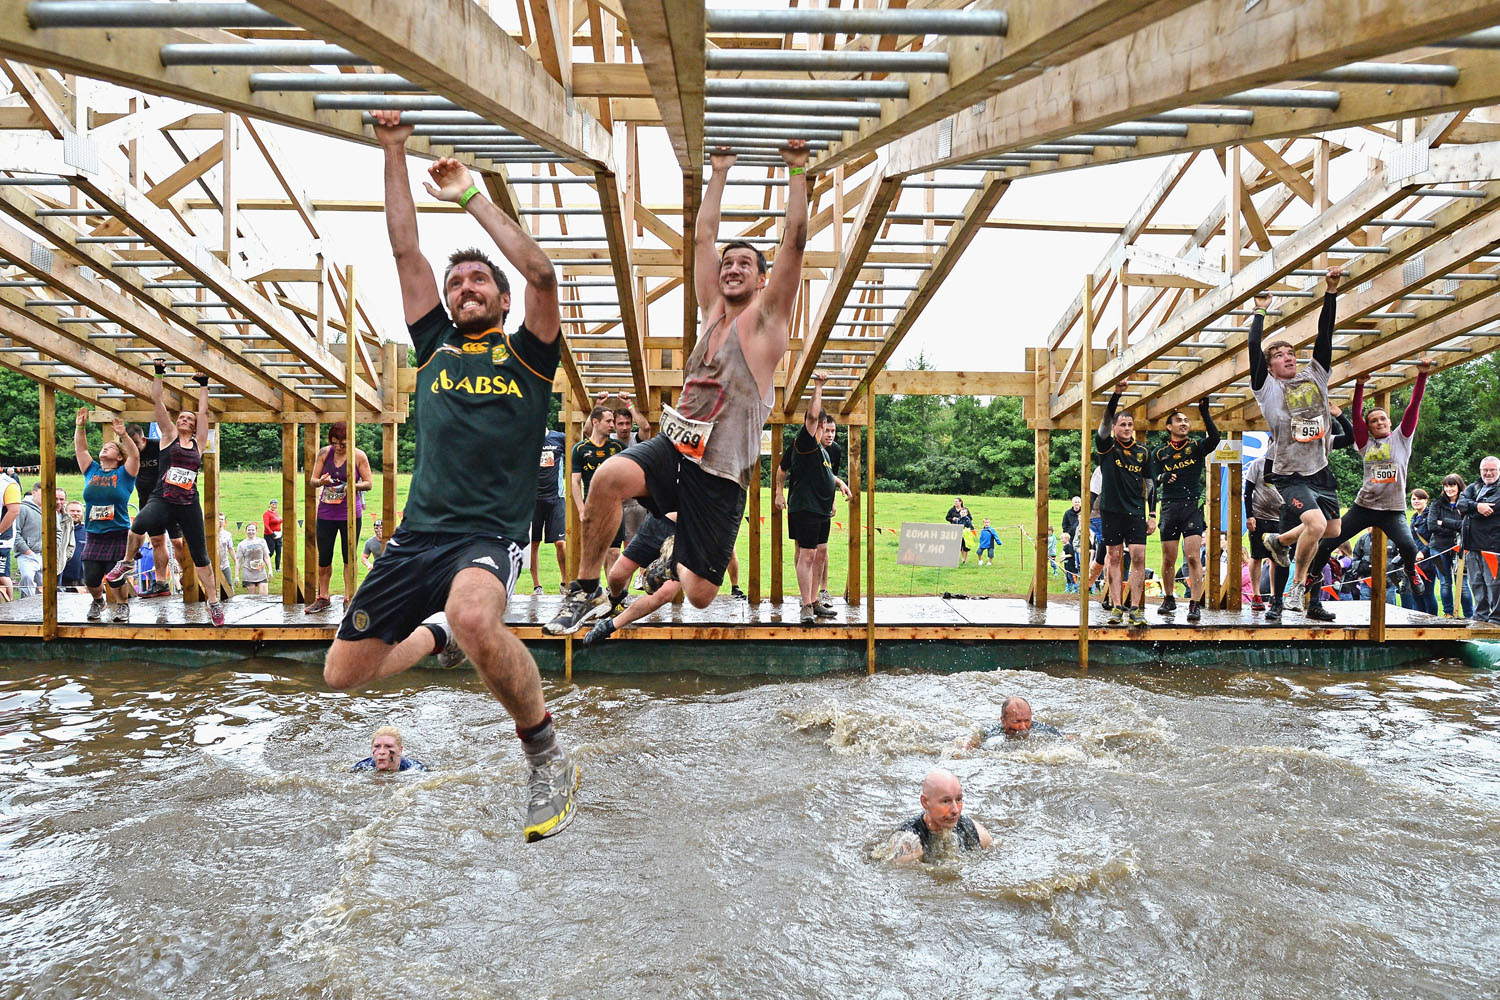 Participents take part in the Tough Mudder endurance event at Dalkieth Country Estate in Edinburgh, Scotland. The world-famous Tough Mudder is military style endurance event over 10-12 miles with various obstacles around the course designed by British Special Forces.